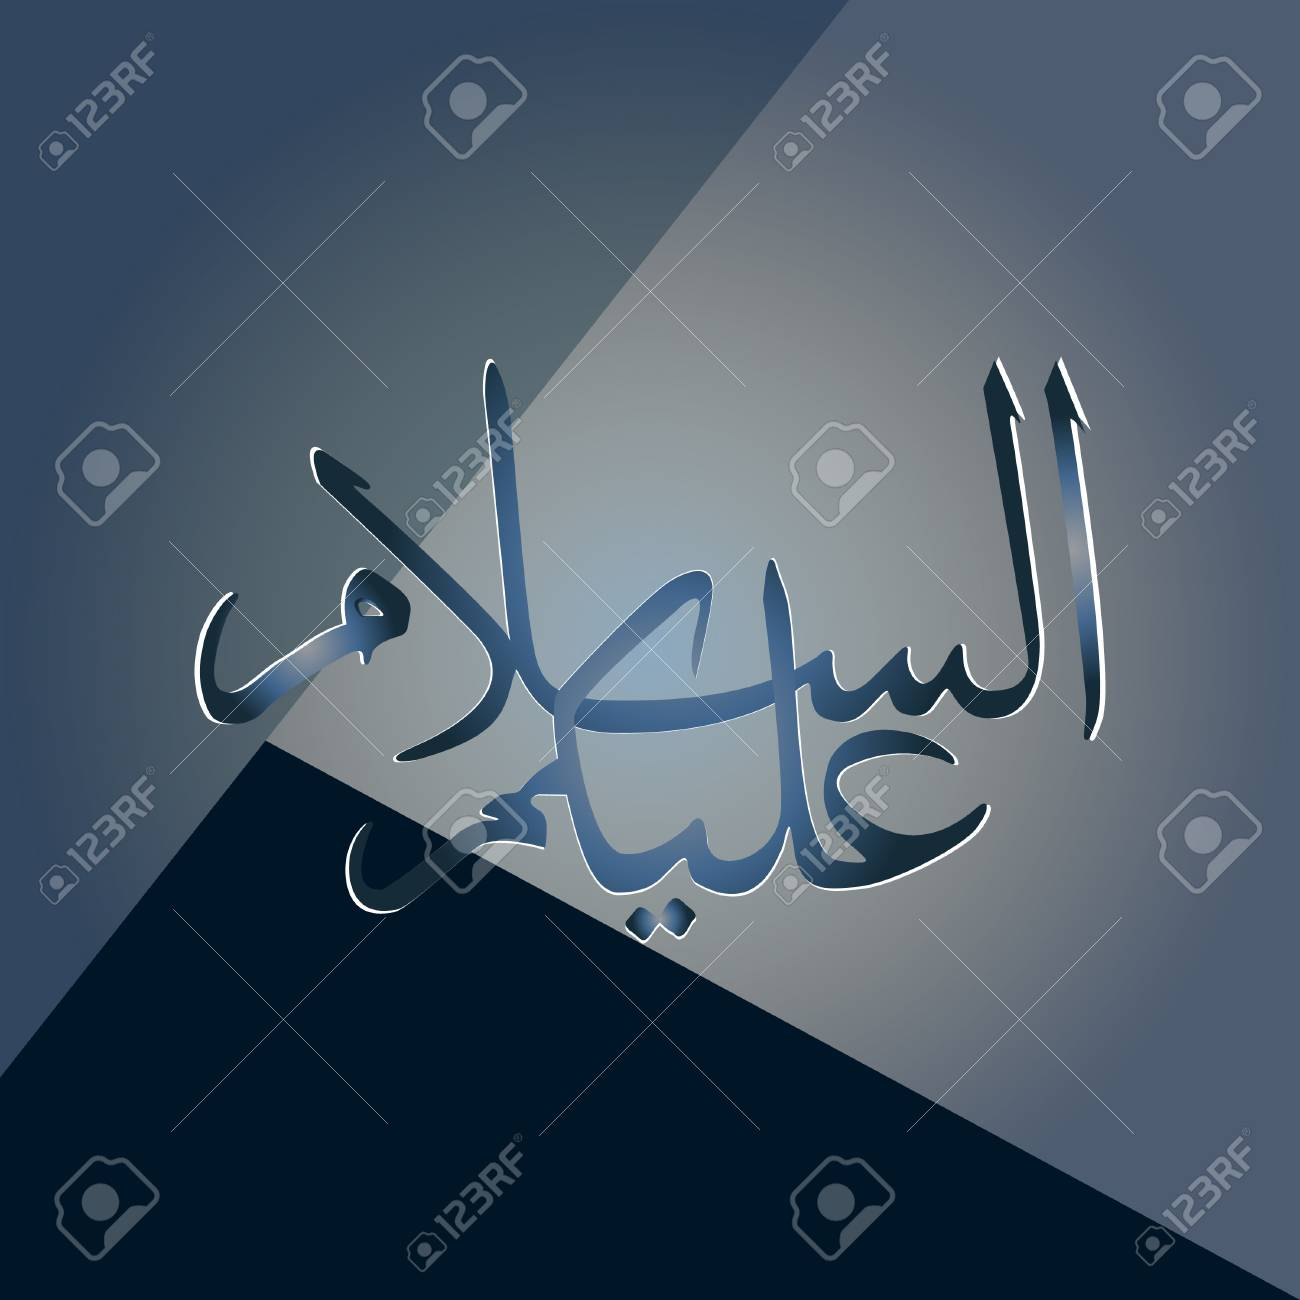 assalamualaikum islamic greeting calligraphy with blue background royalty free cliparts vectors and stock illustration image 92666997 assalamualaikum islamic greeting calligraphy with blue background